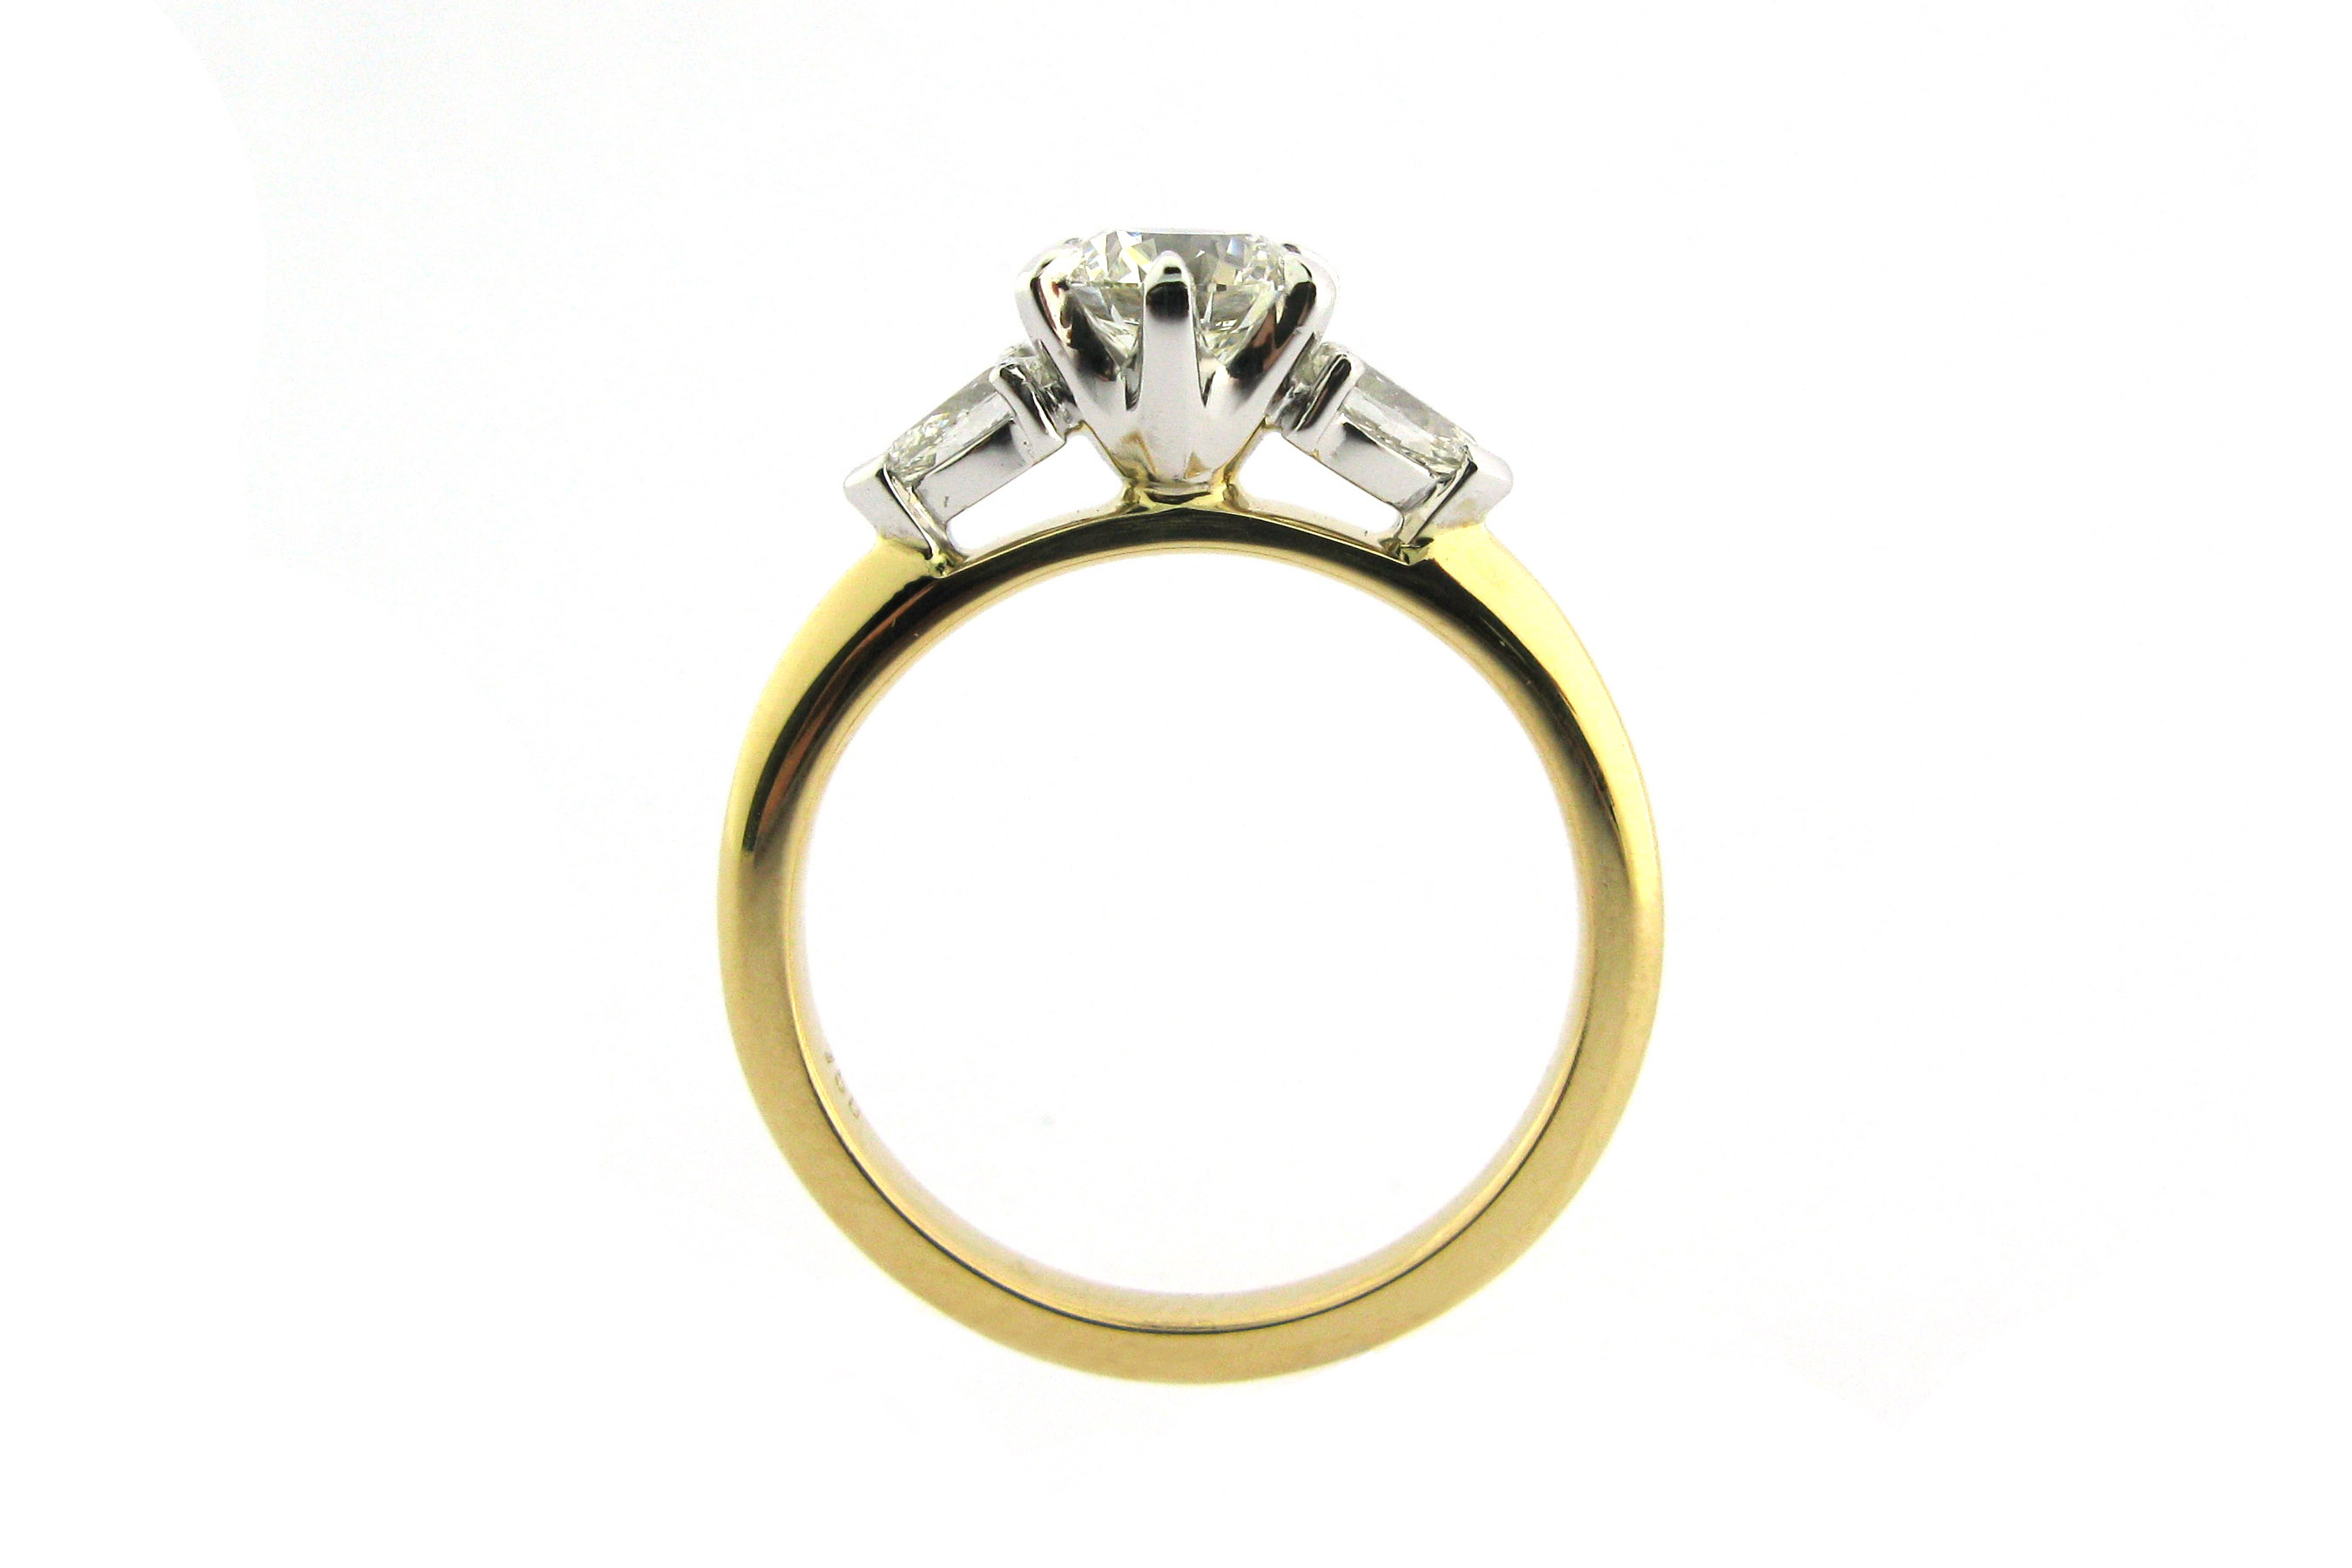 Round Brilliant Cut Diamond Ring With Pear Shaped Side With Round Brilliant Engagement Rings With Pear Shaped Side Stones (View 20 of 25)